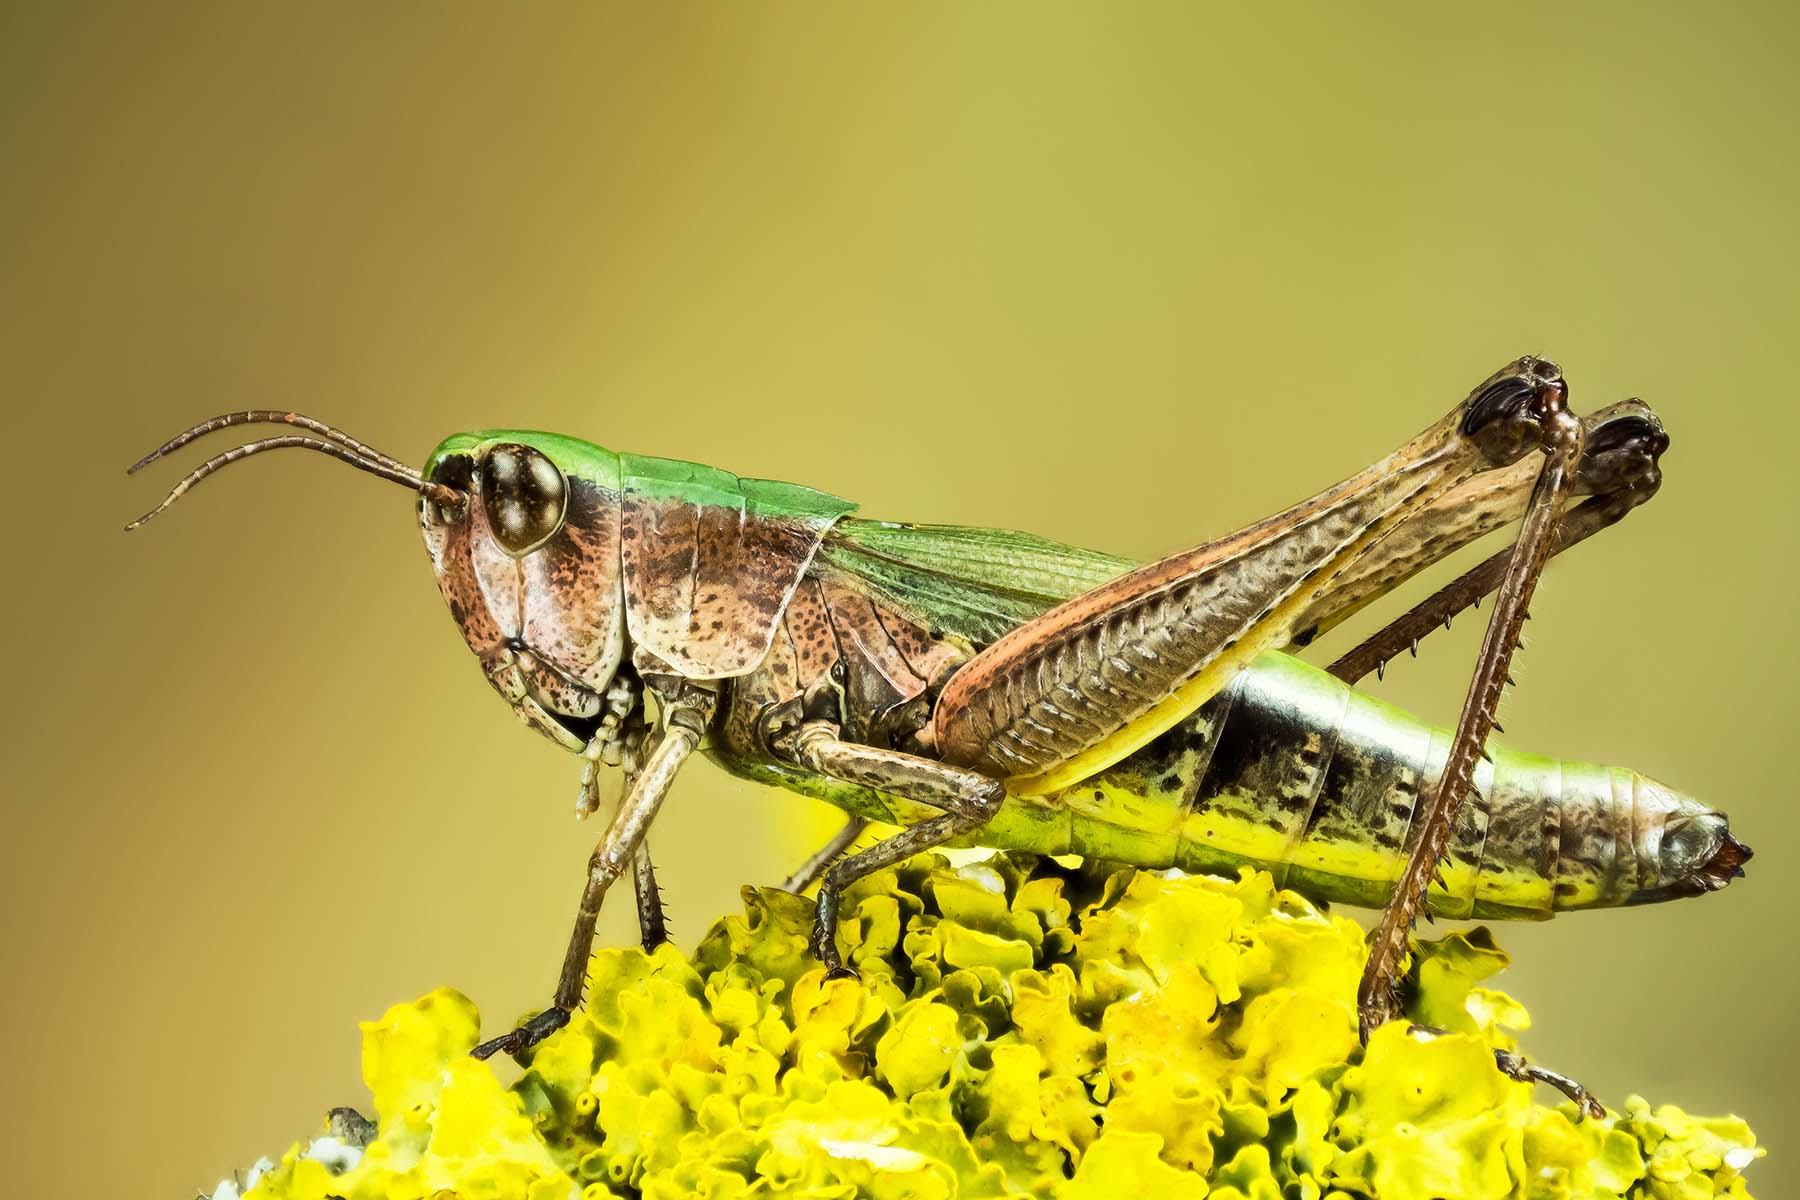 A closeup of a bright green Lesser Marsh Grasshopper sitting on top of a yellow flower.